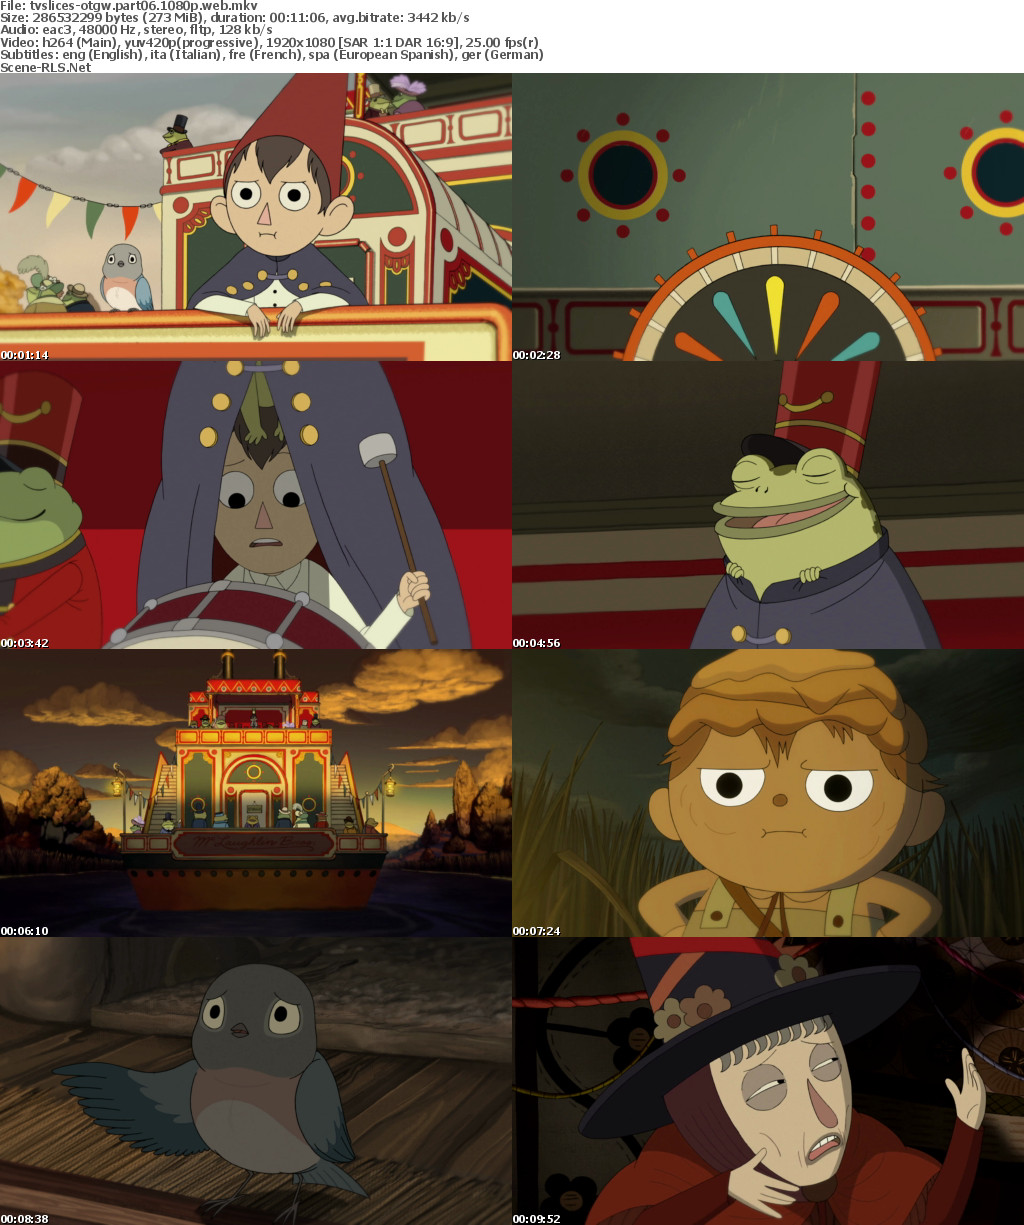 Over The Garden Wall Part06 1080p WEB x264-TVSLiCES - Scene Release